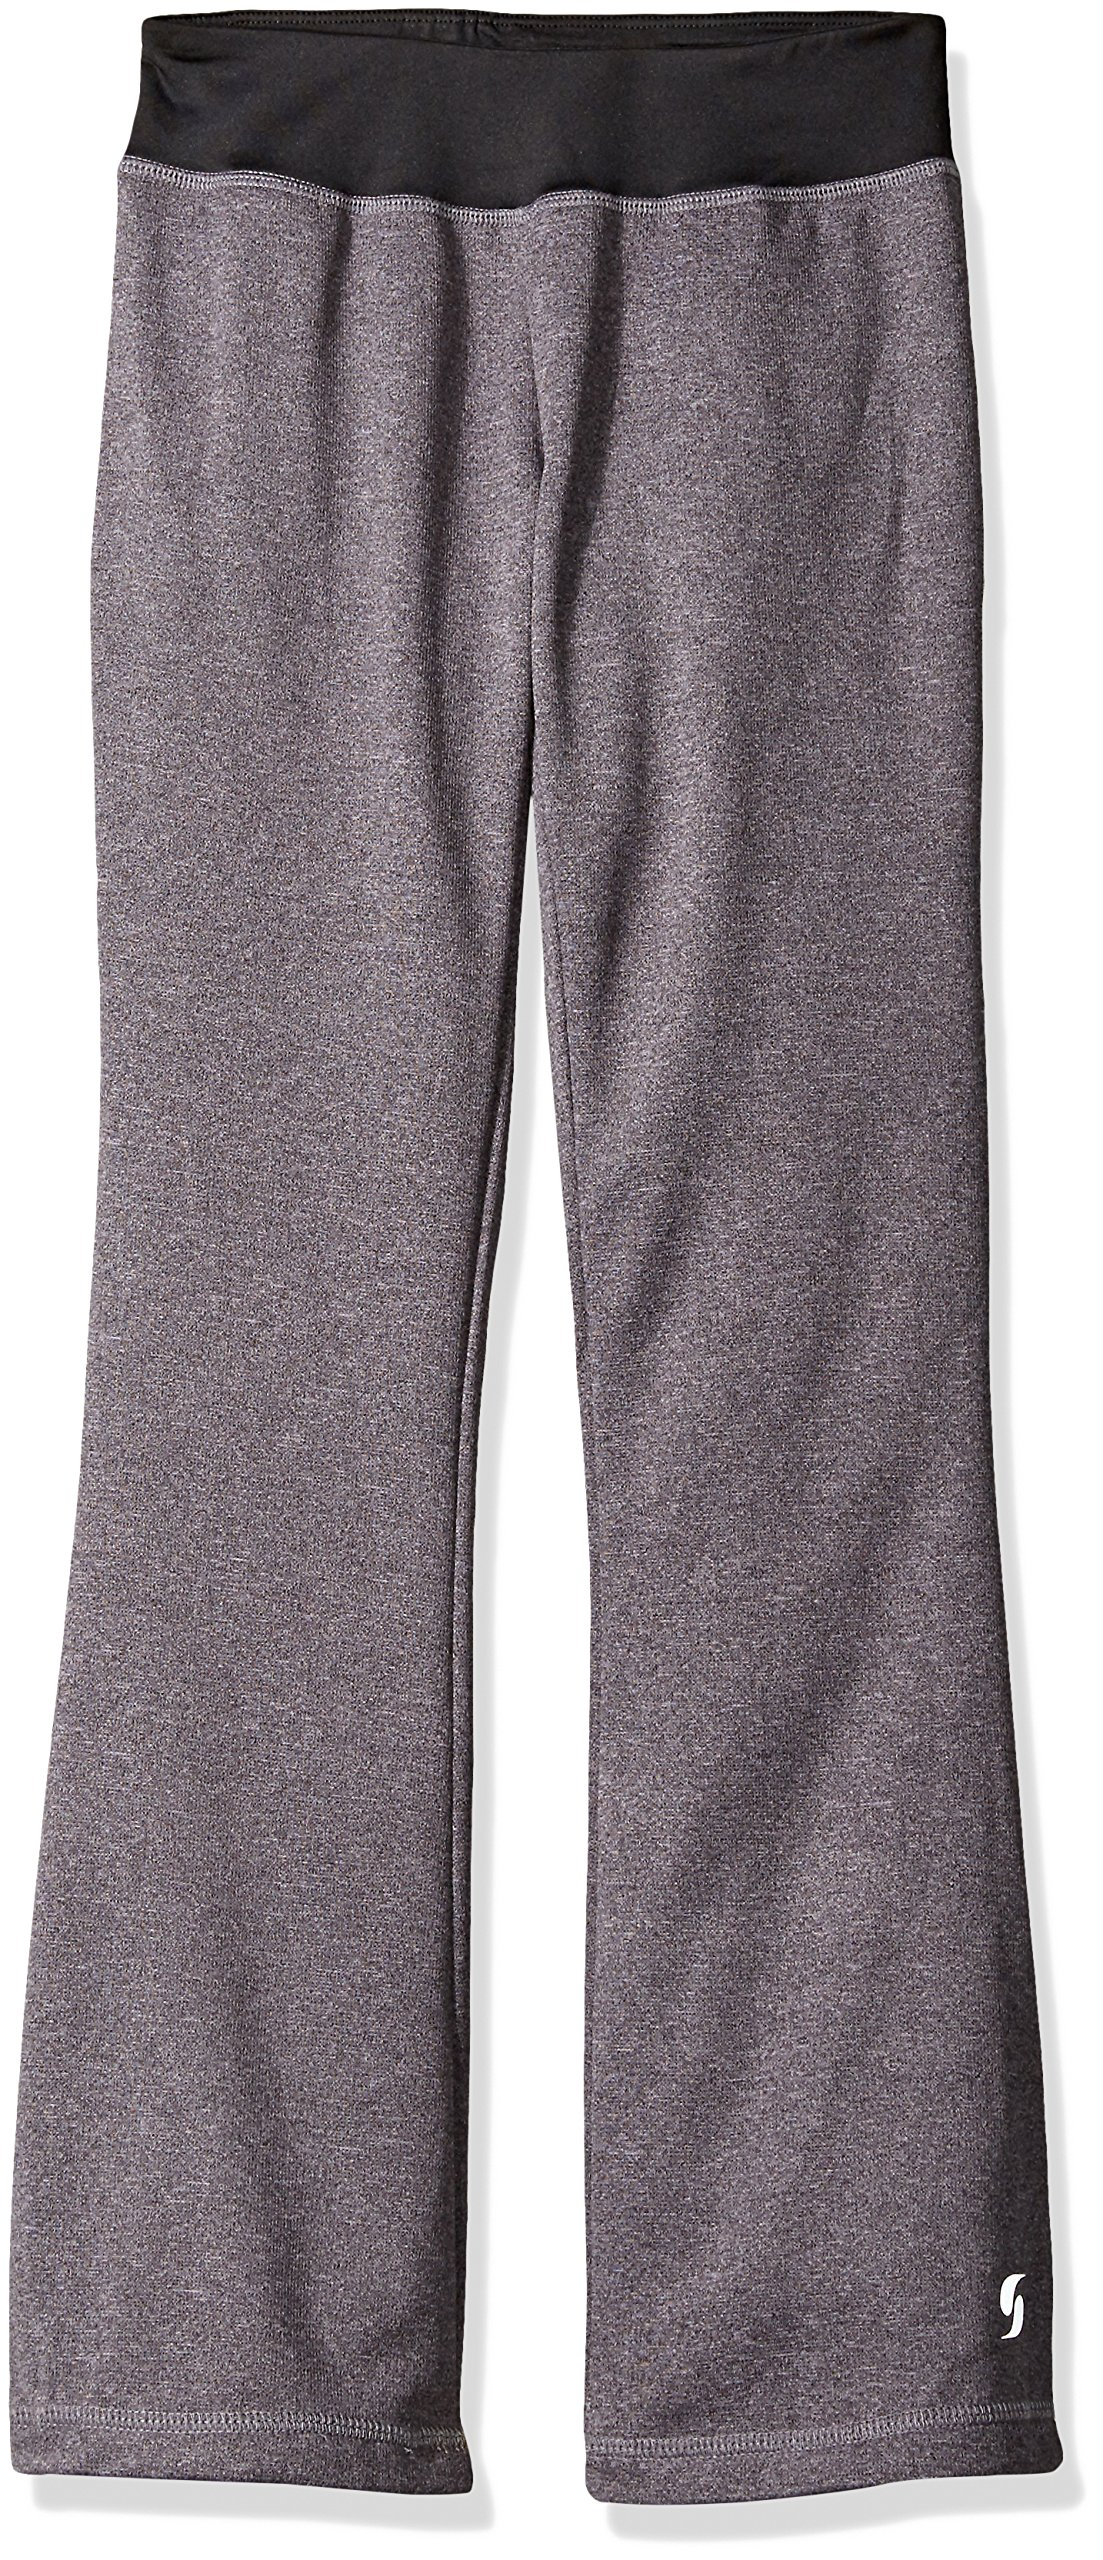 Soffe Big Girls' Fleece Boot Pant, Grey Heather, Small